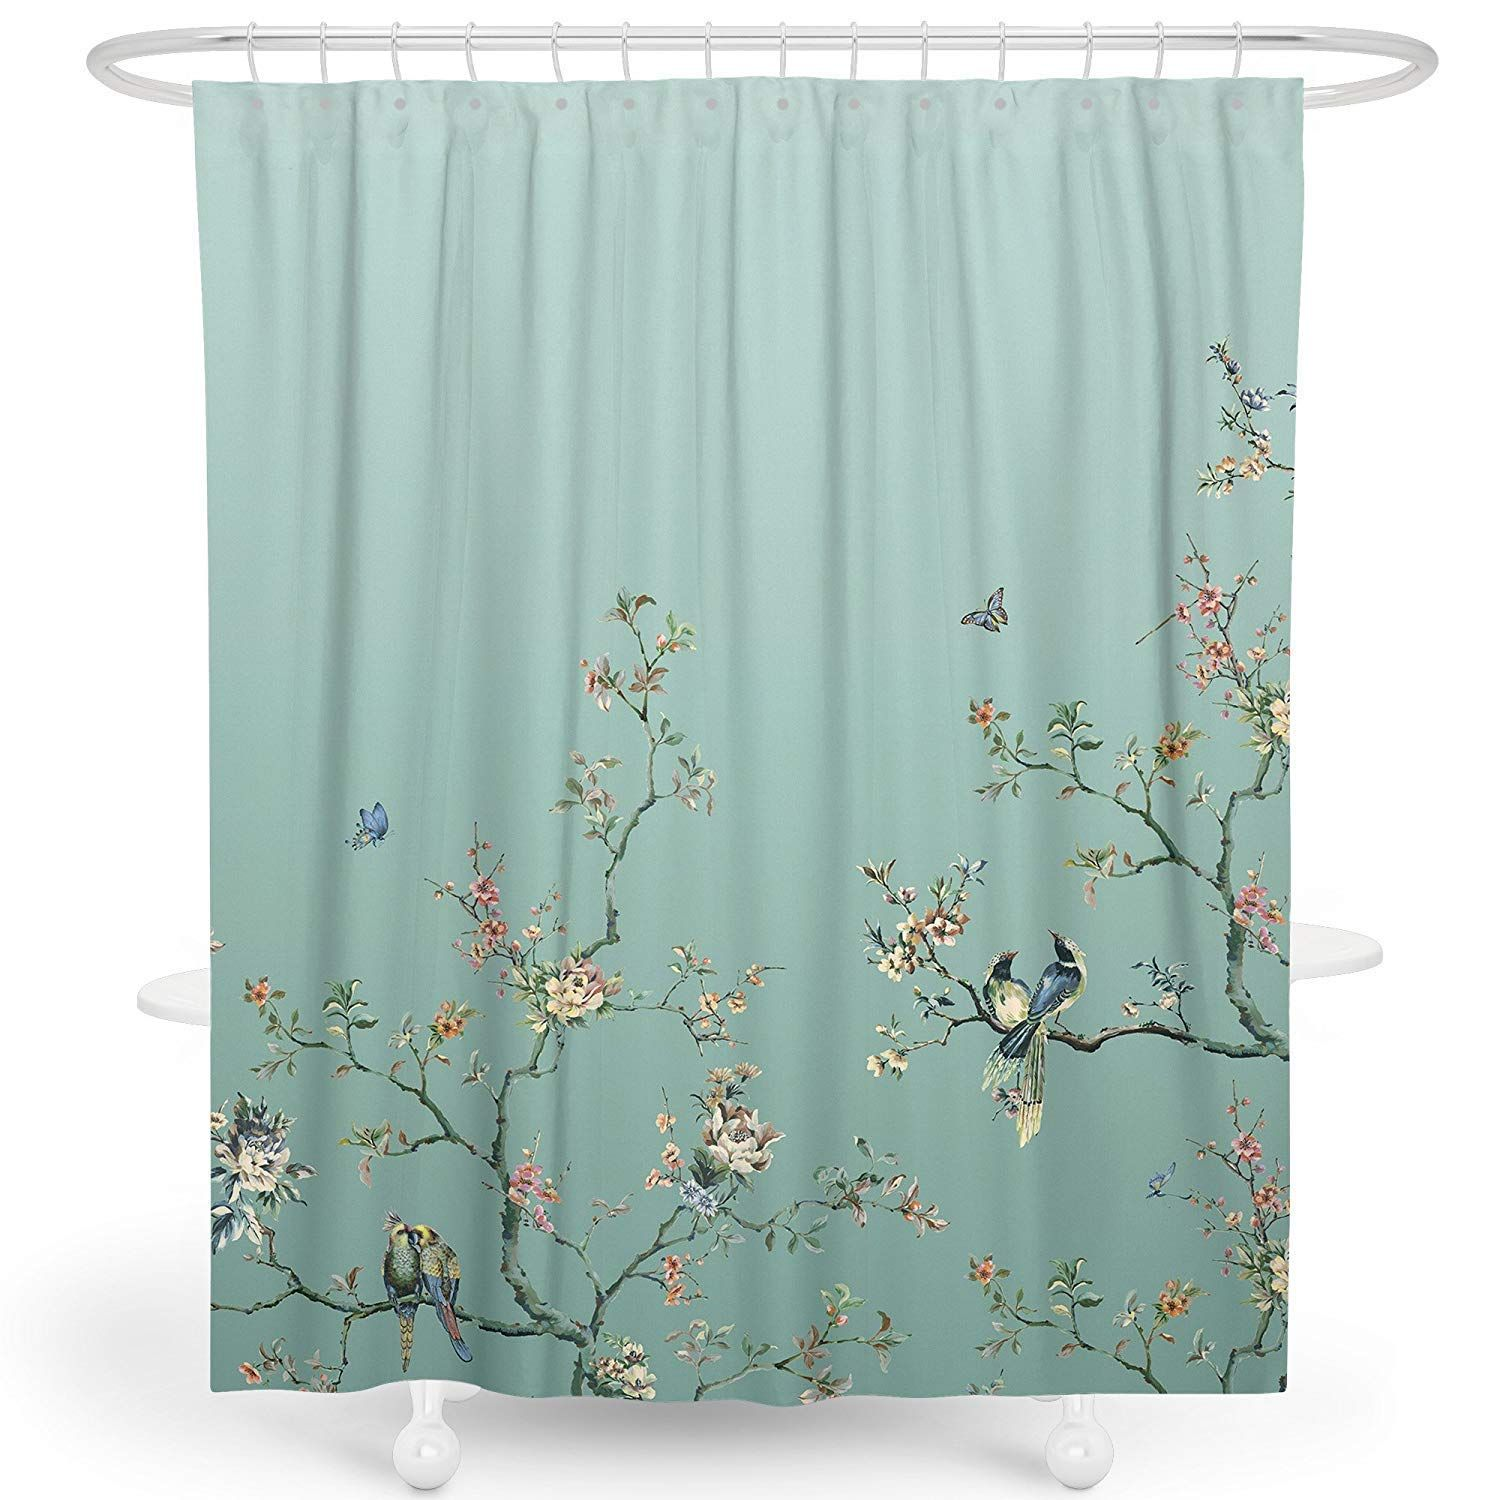 Amazon Com Livetty Printing Shower Curtain Bathroom Decor Waterproof Mildew Resistant Anti Bacterial 72x78 With Rust Proof Grommets Shower Curtain Hooks Curtains Bathroom Shower Curtains